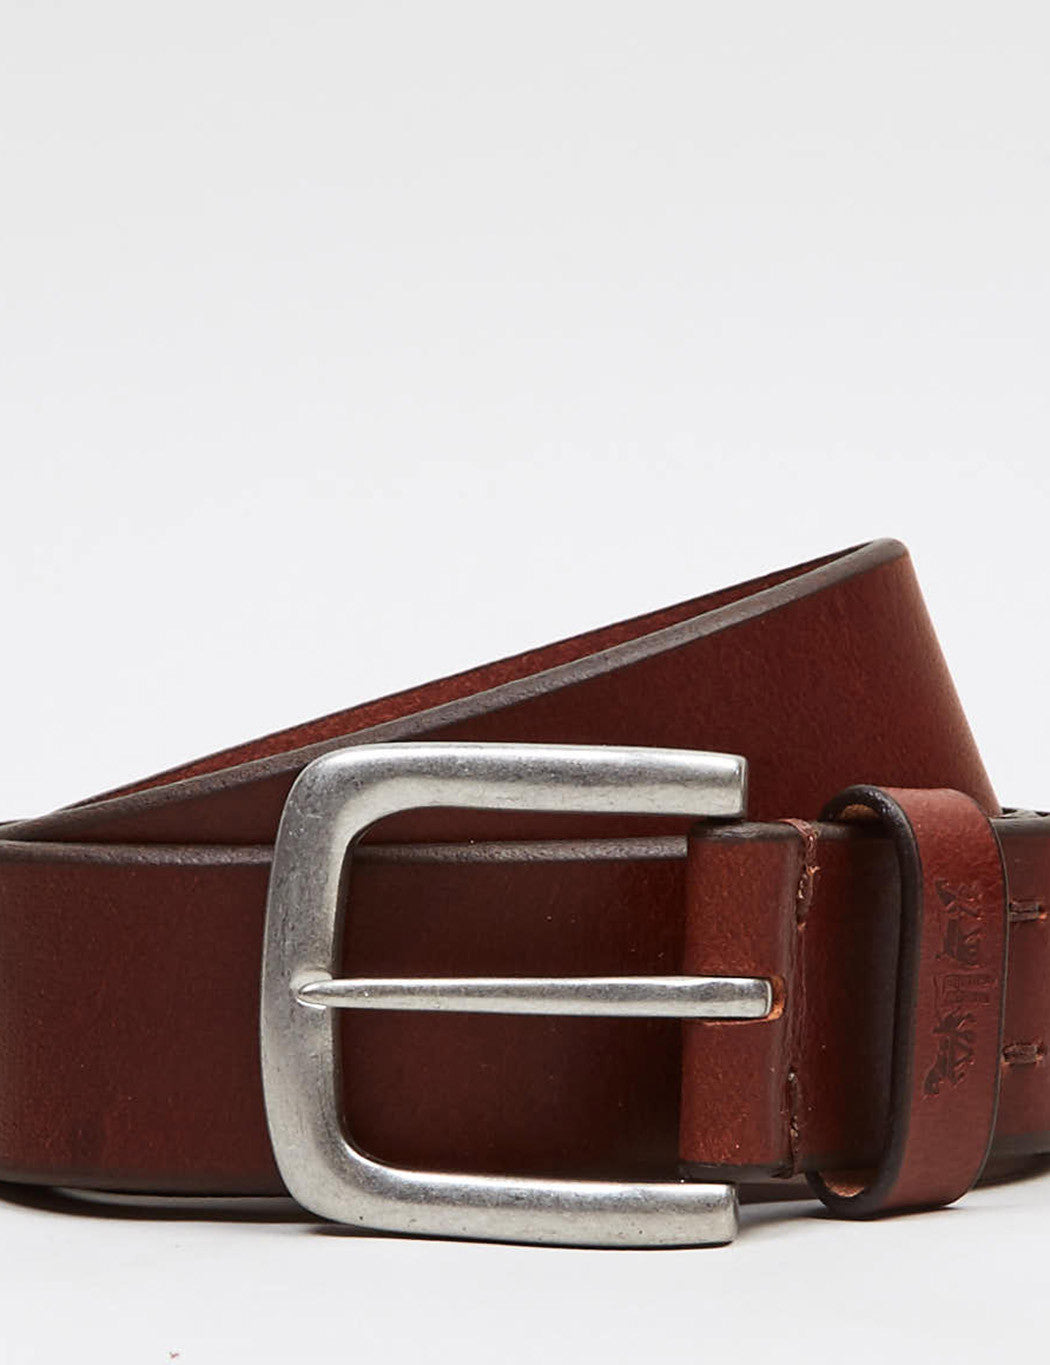 Levis Two Horse Pull Embossed Belt - Dark Brown